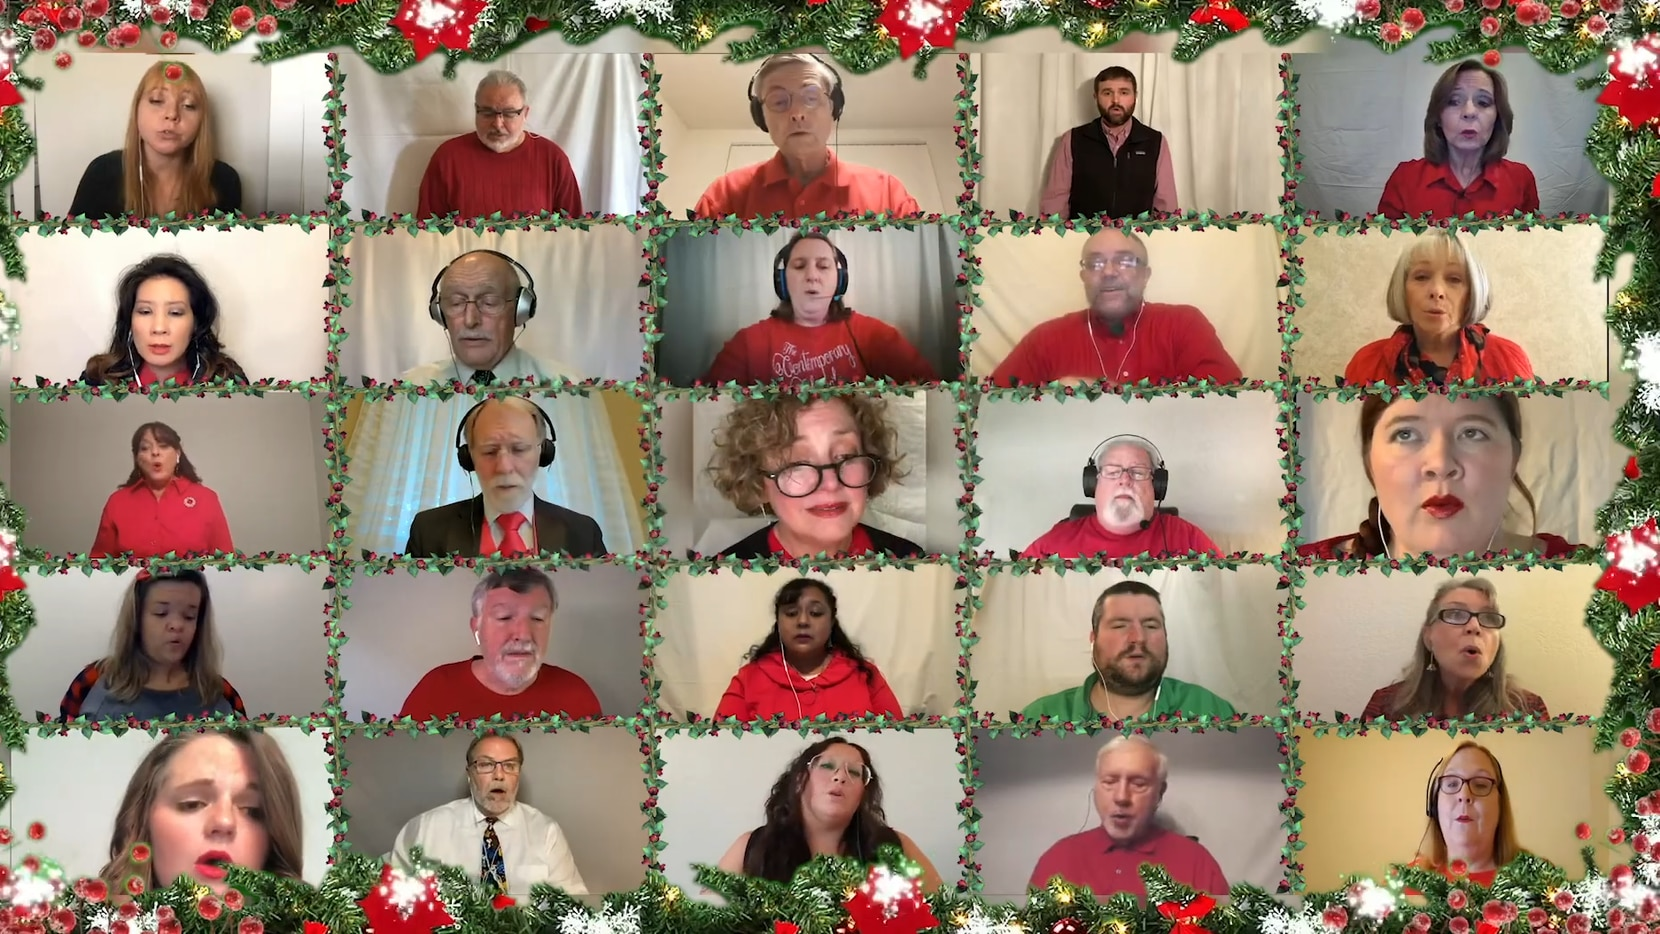 A screen shot of the latest performance by the Contemporary Chorale. The Richardson choir recorded its Christmas performance remotely and shared it online this year during the coronavirus pandemic.